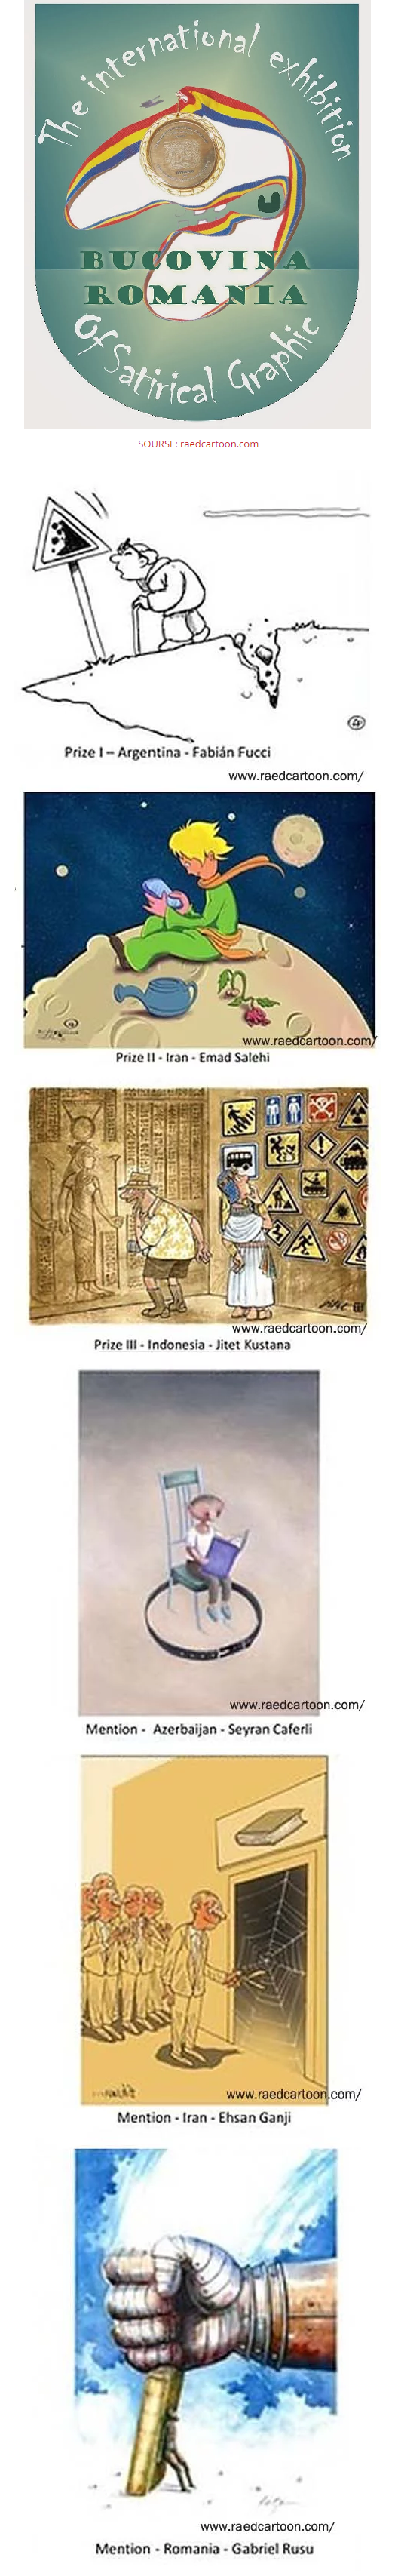 2Results of The International Exhibition of Satirical Graphic BUCOVINA - ROMANIA the 12 th Edition, 2018 _ HUMORTOONS.png